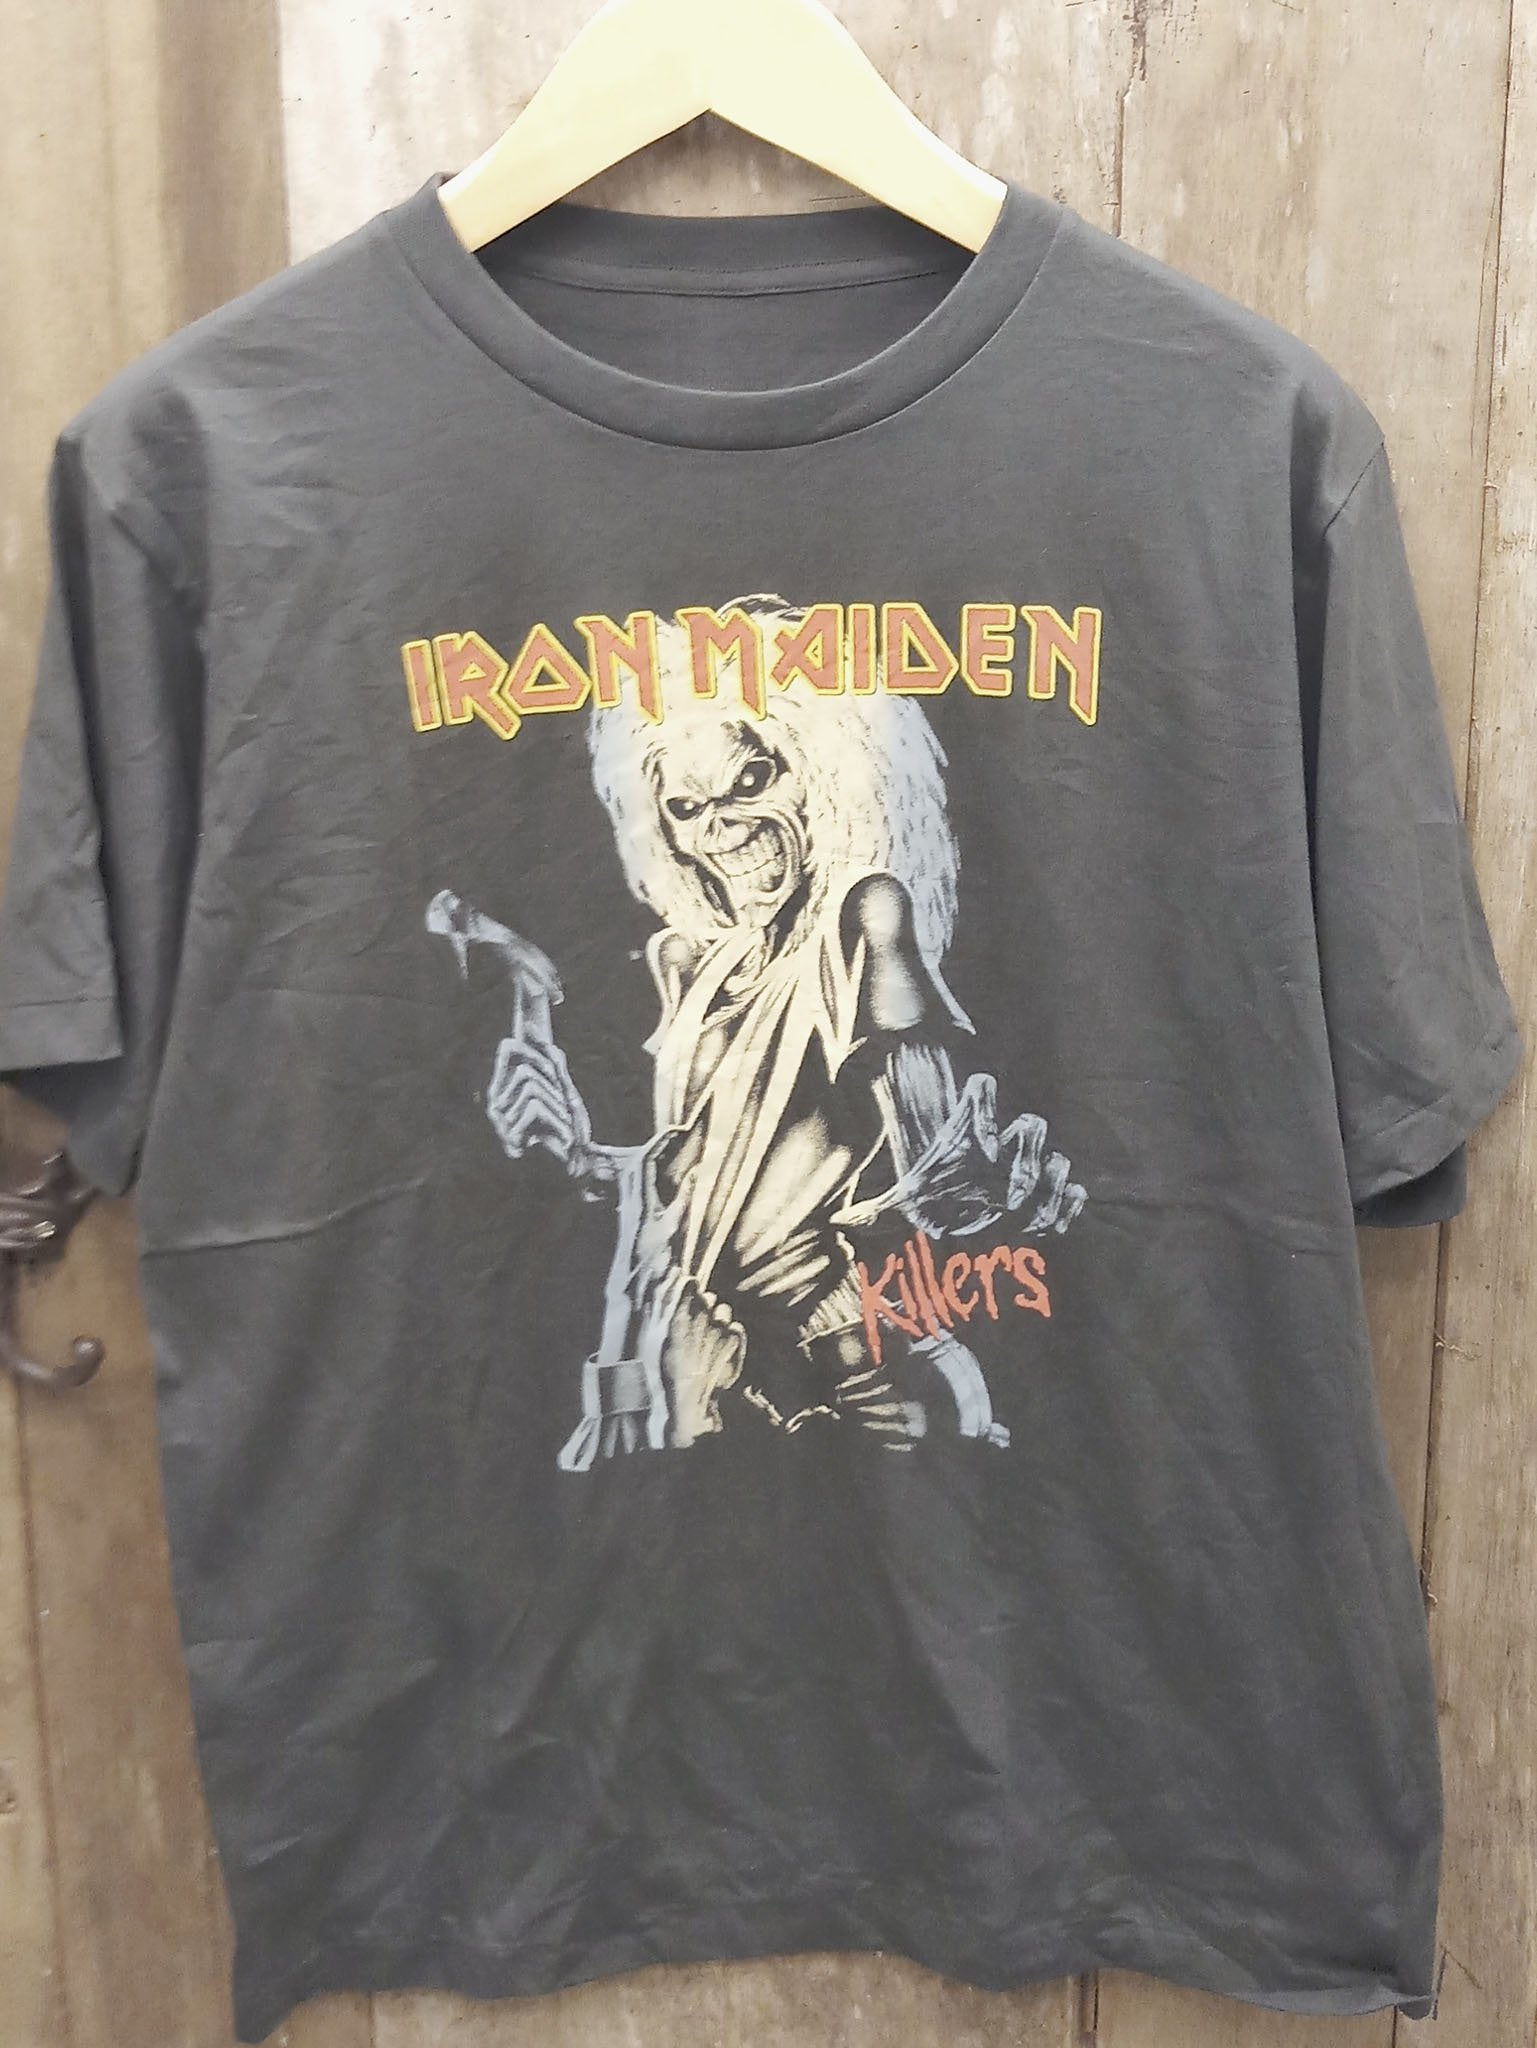 IRON MAIDEN 100% Cotton New Vintage Band T Shirt